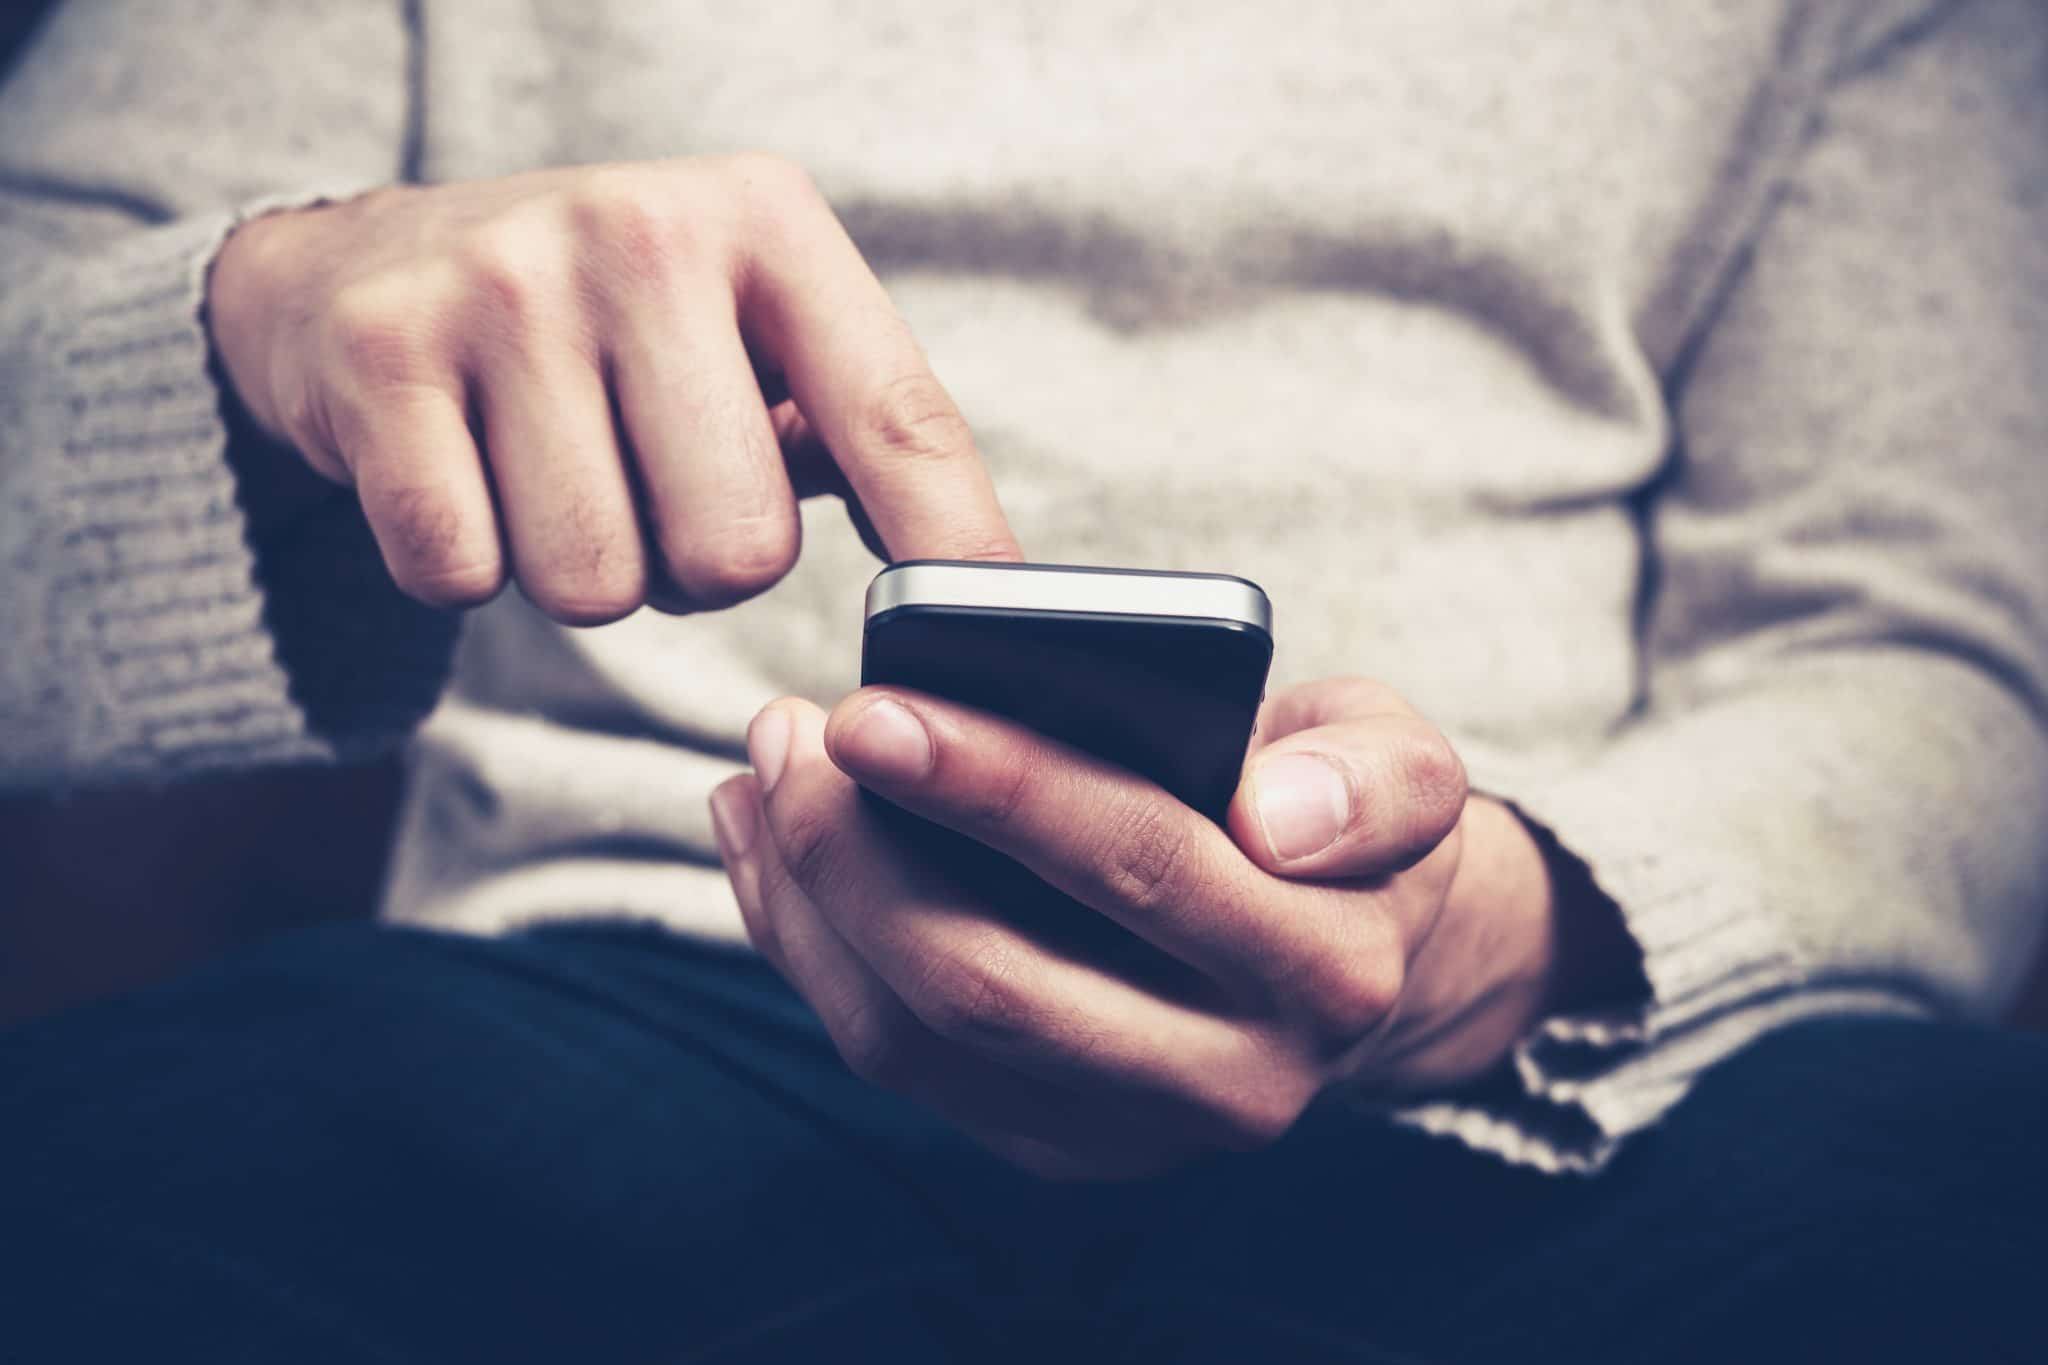 Does your practice affect how often mobile visitors engage with your site?